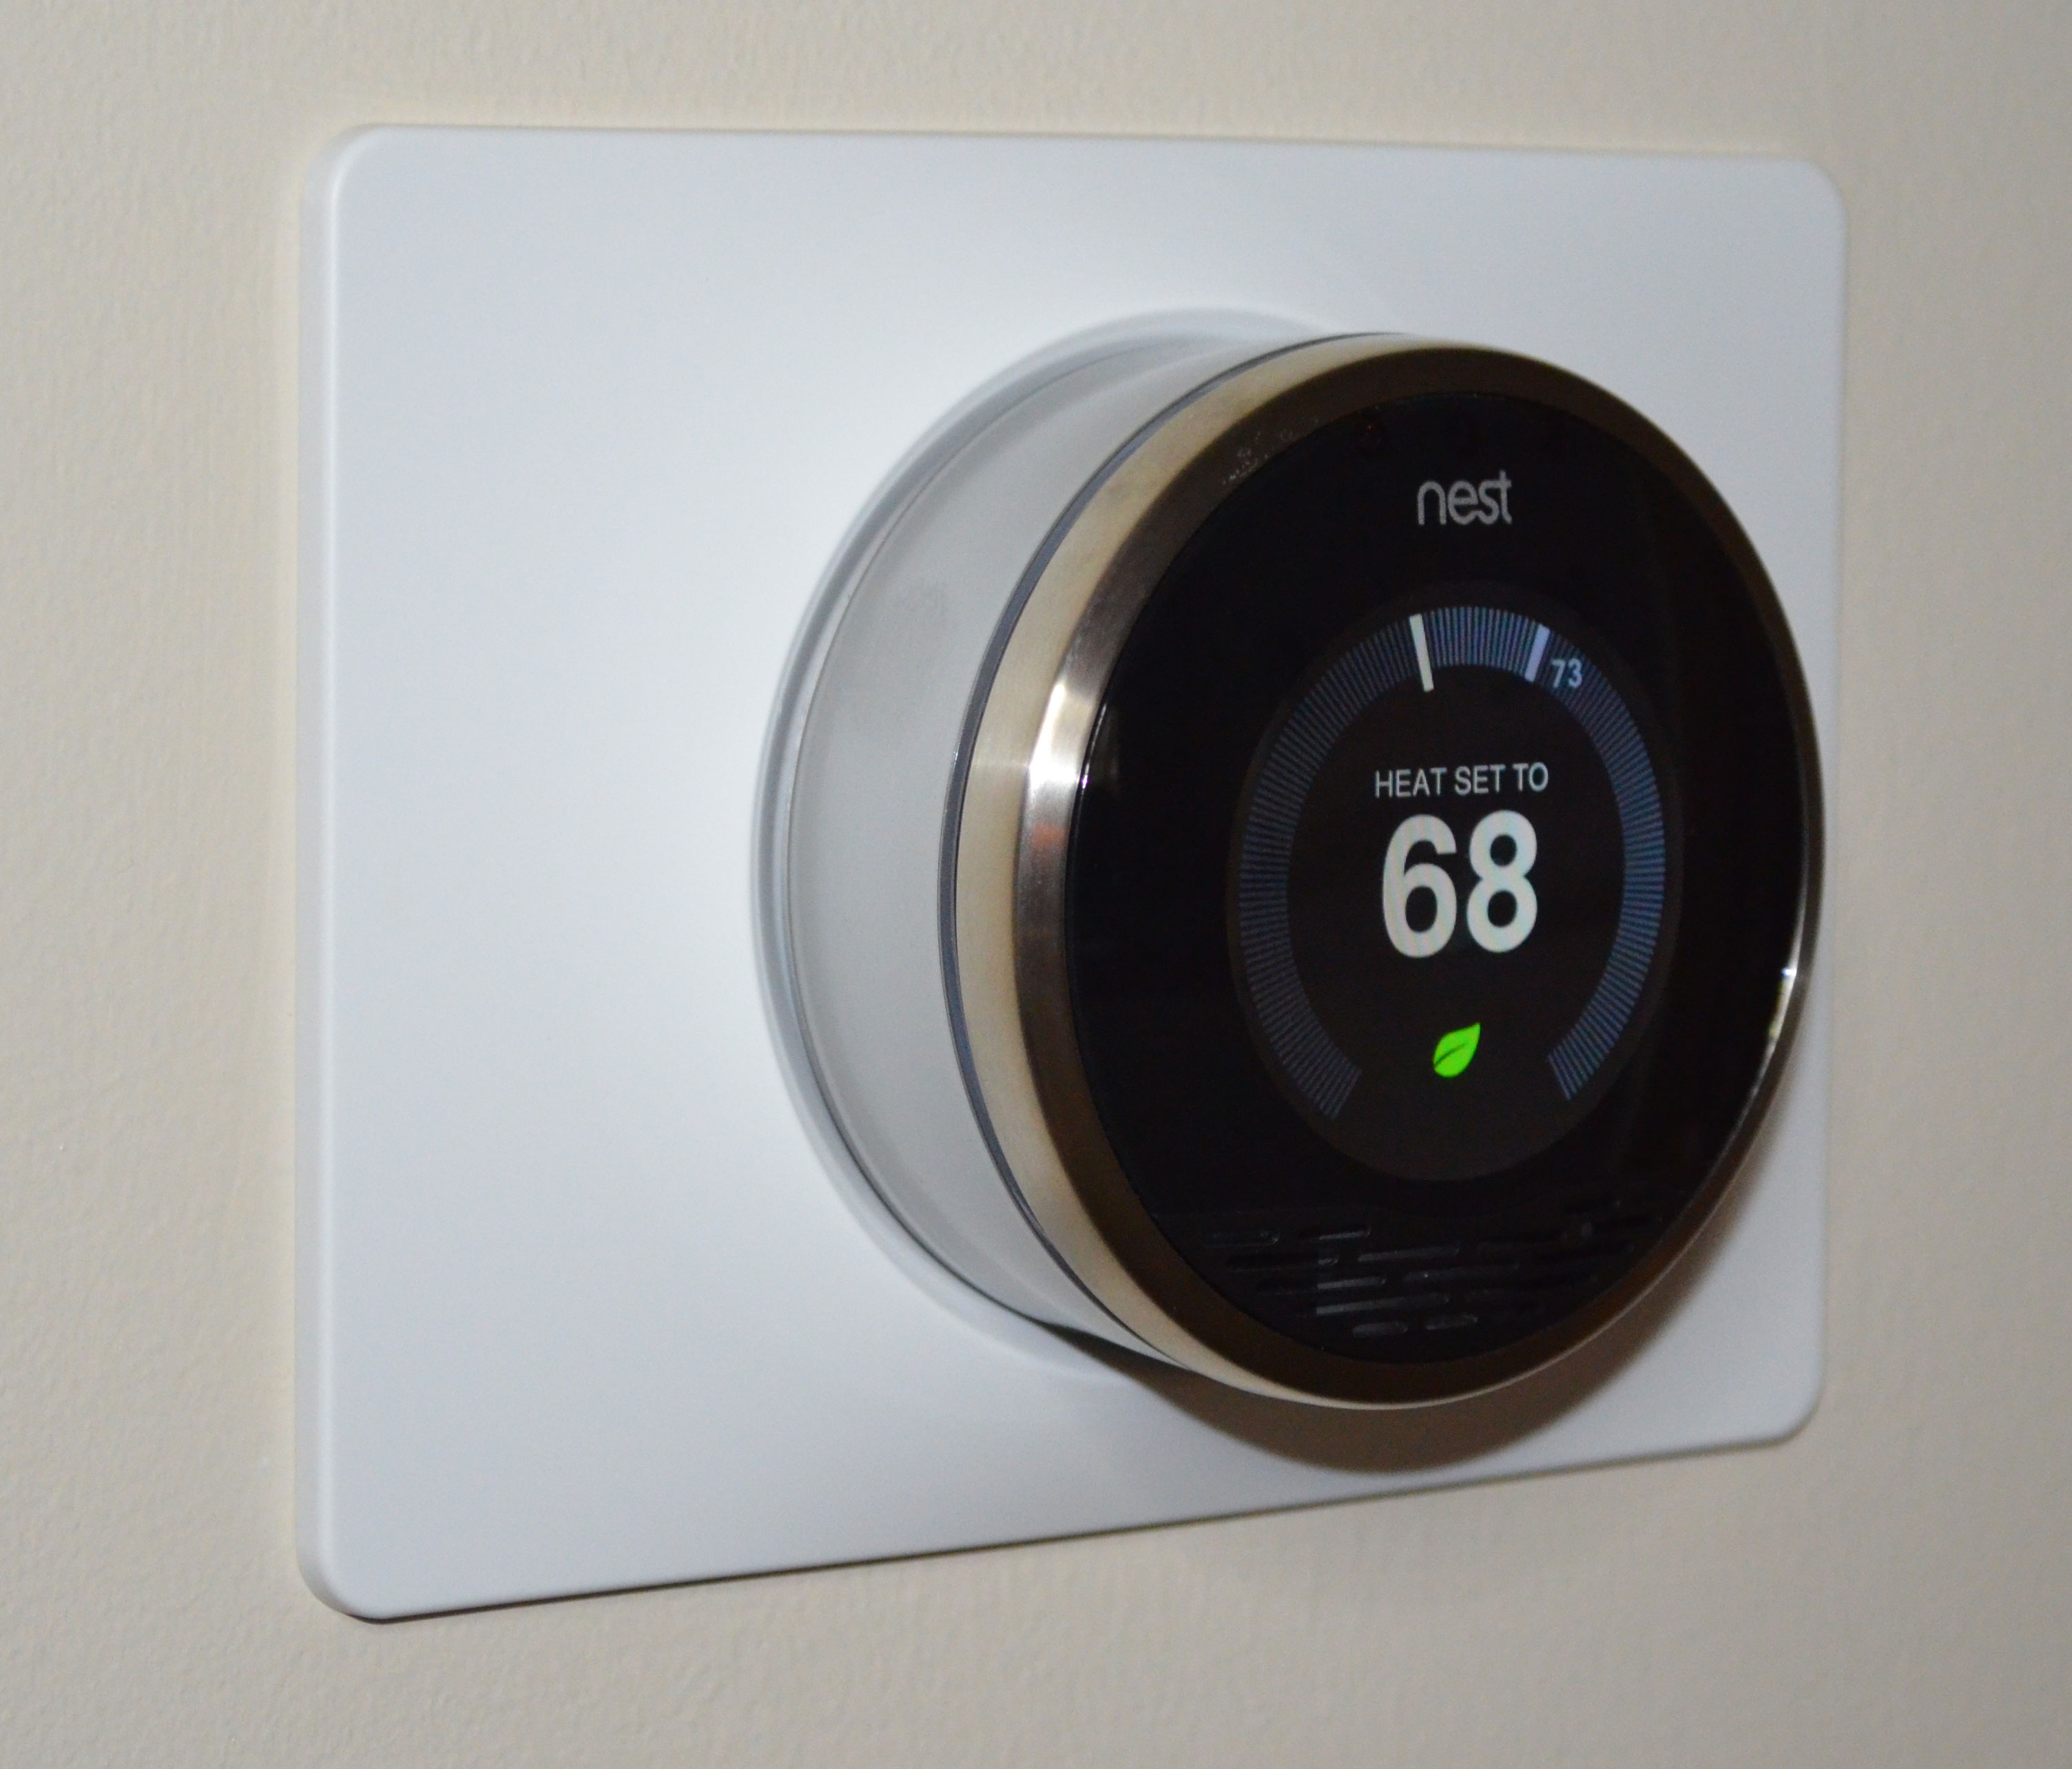 Nest Thermostat Recommendation